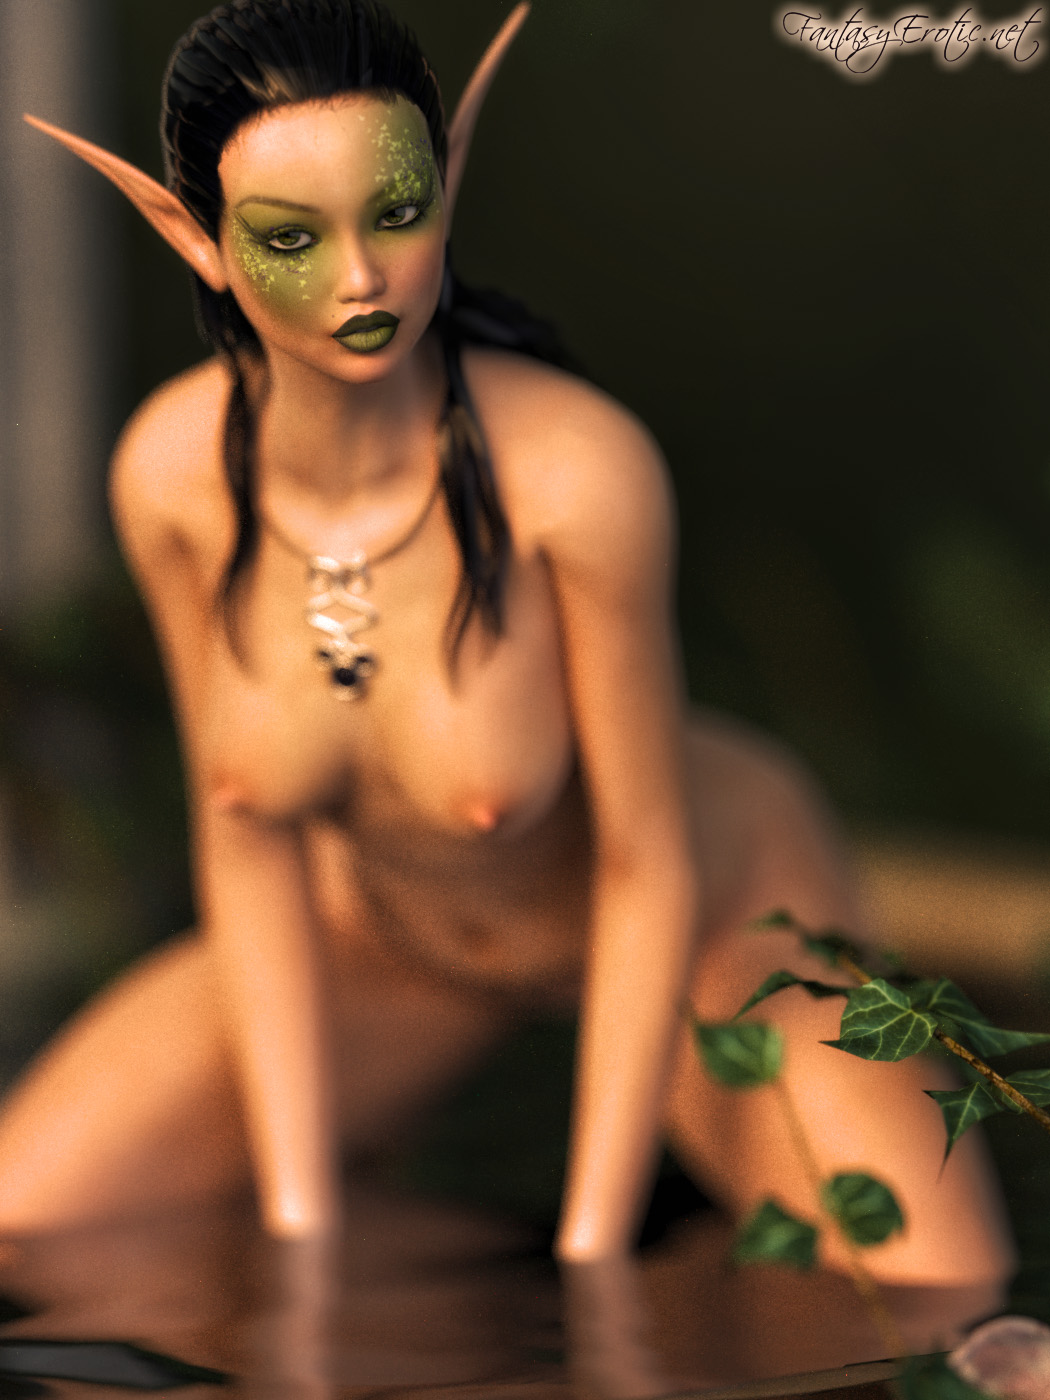 Nymph elf sex sexual women